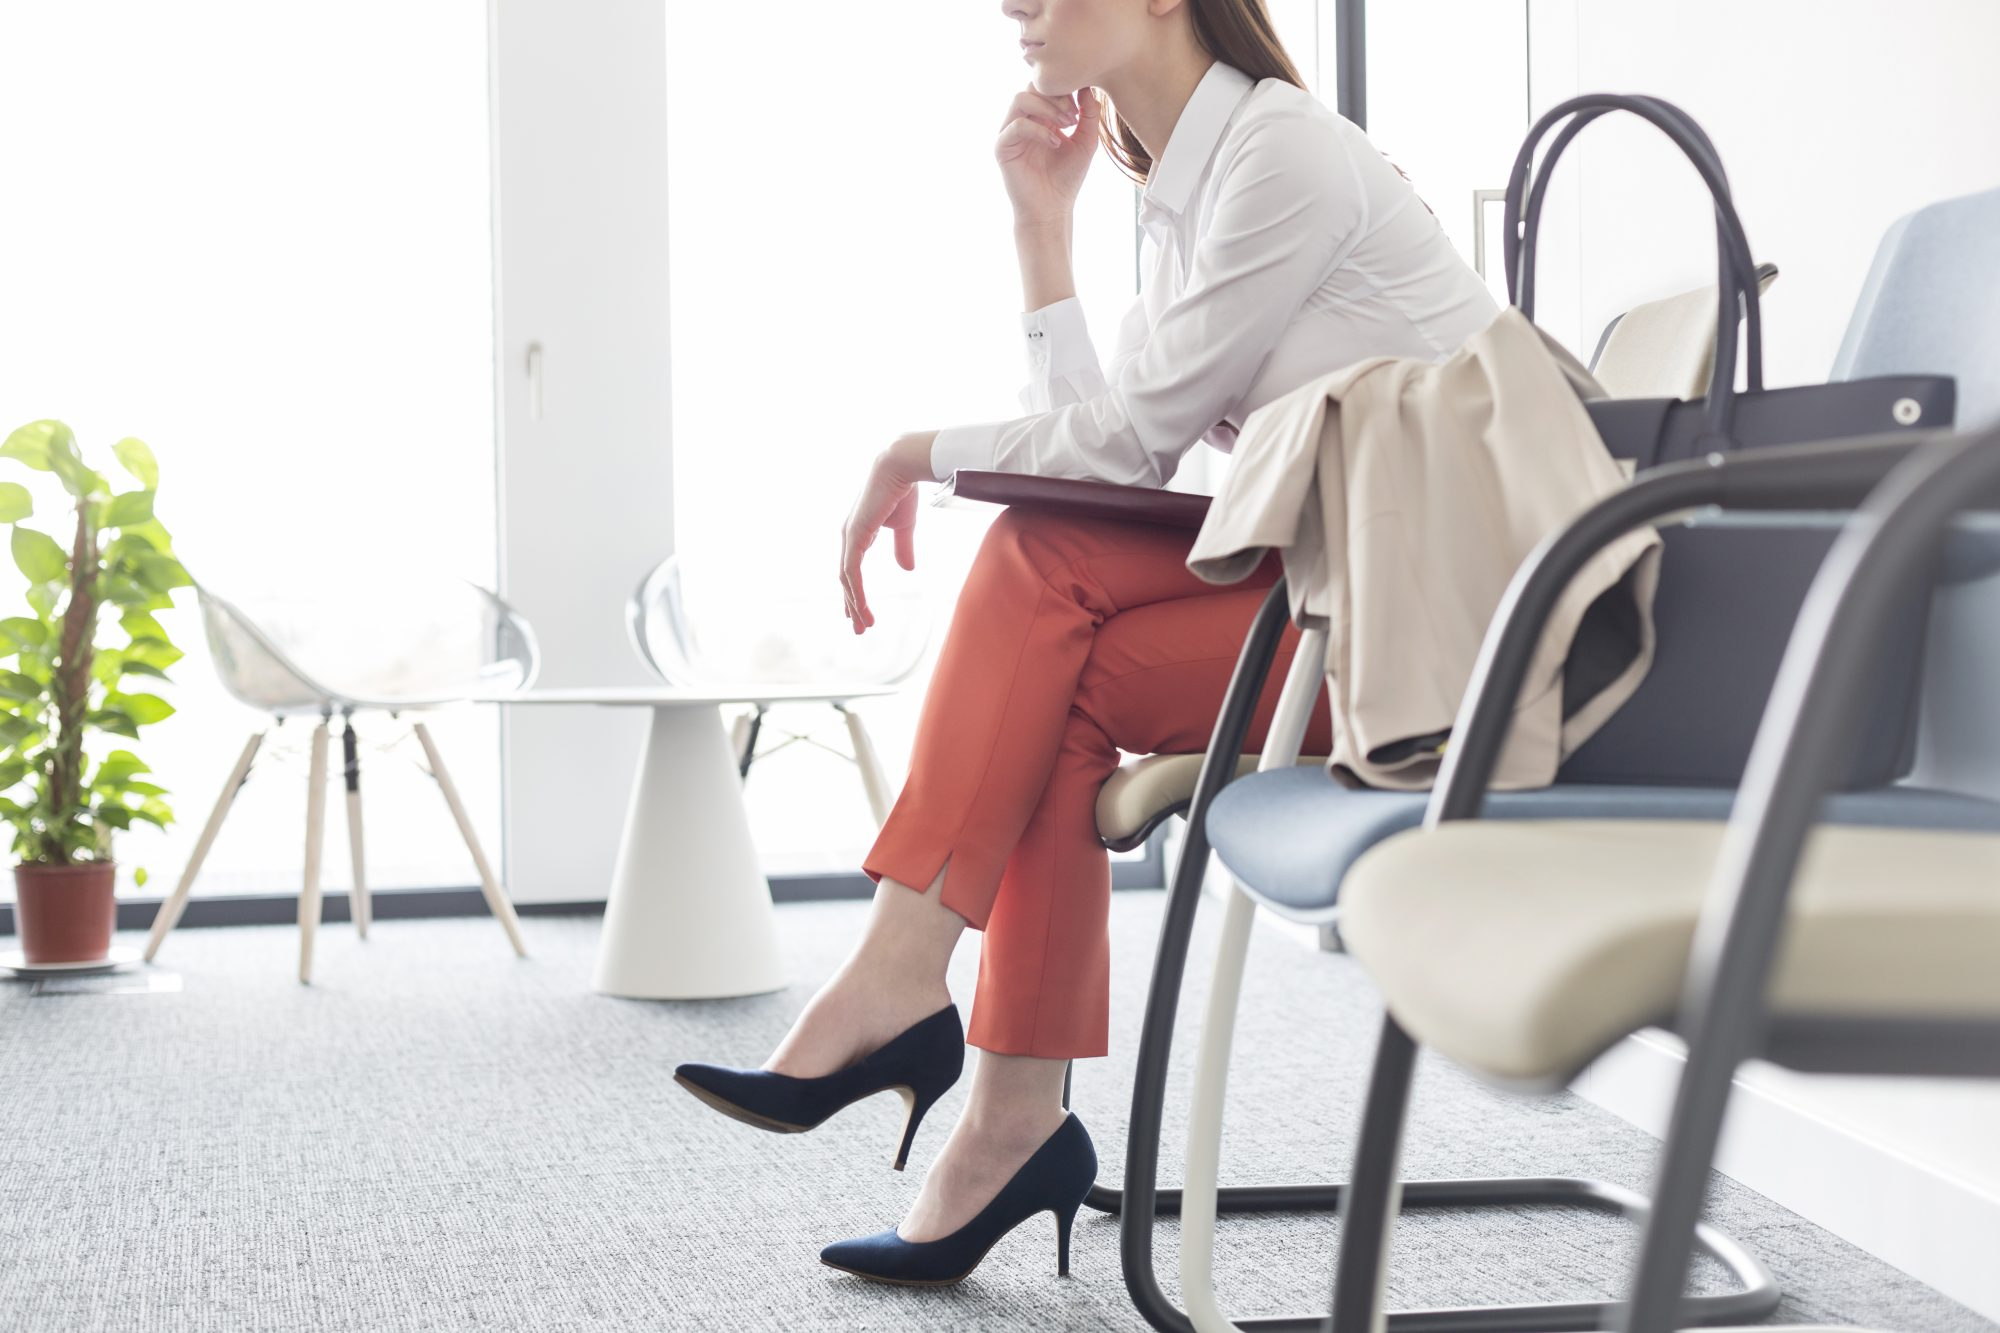 Businesswoman waiting in lobby